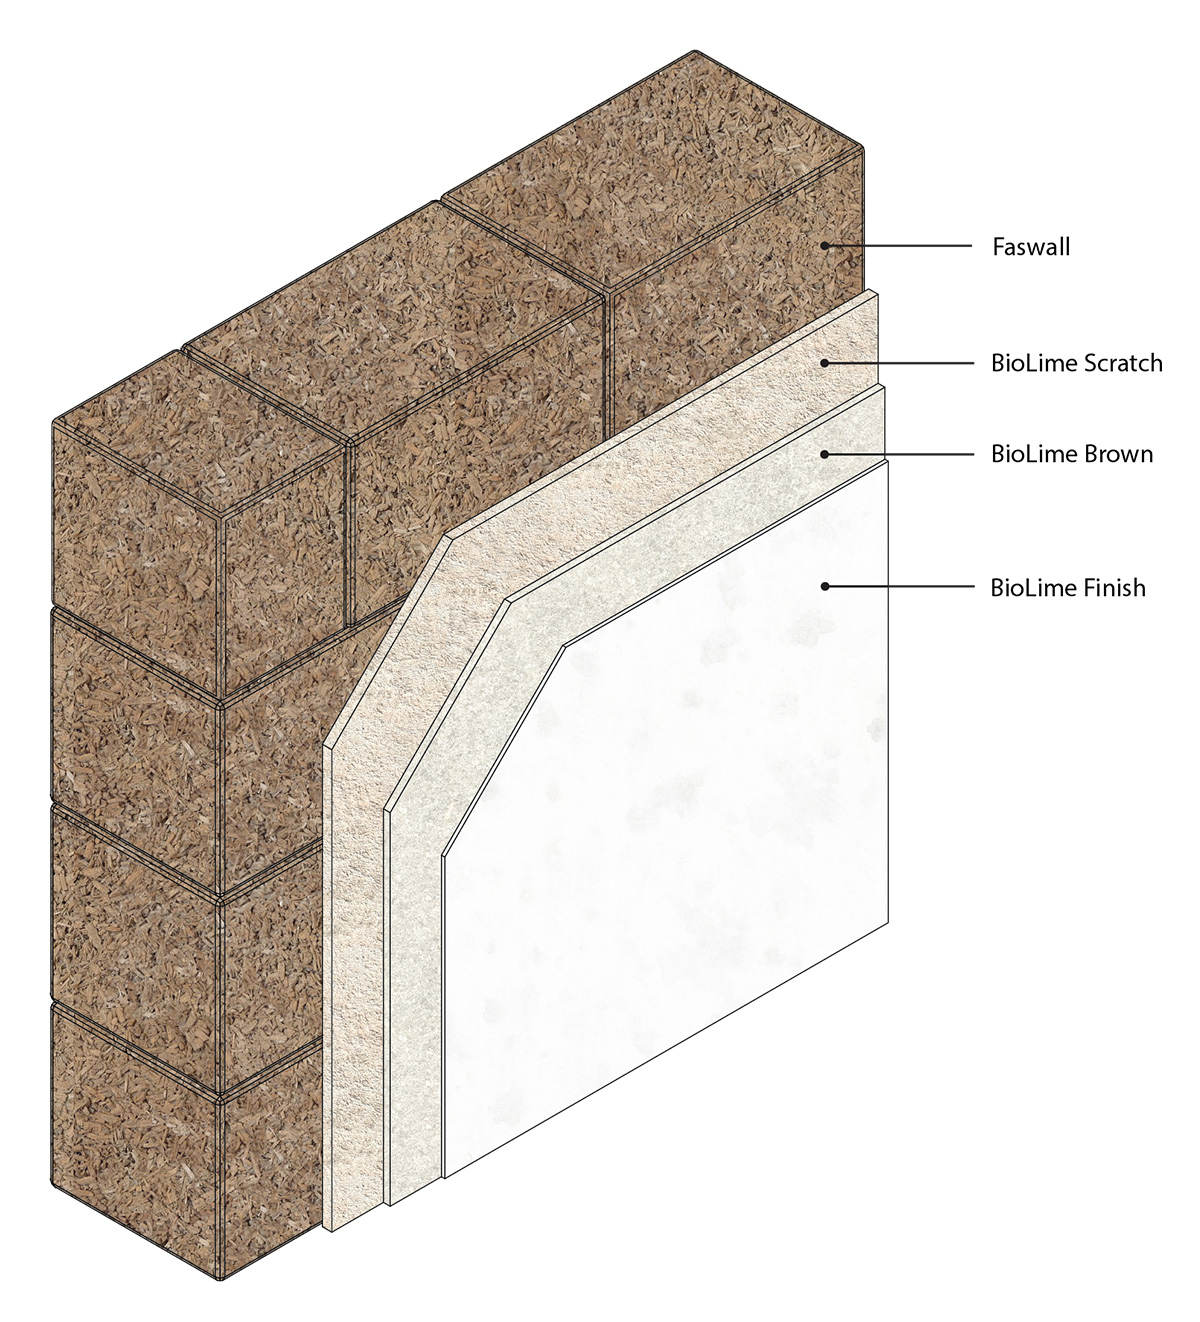 3D isometric image of BioLime plaster for a Faswall wall system